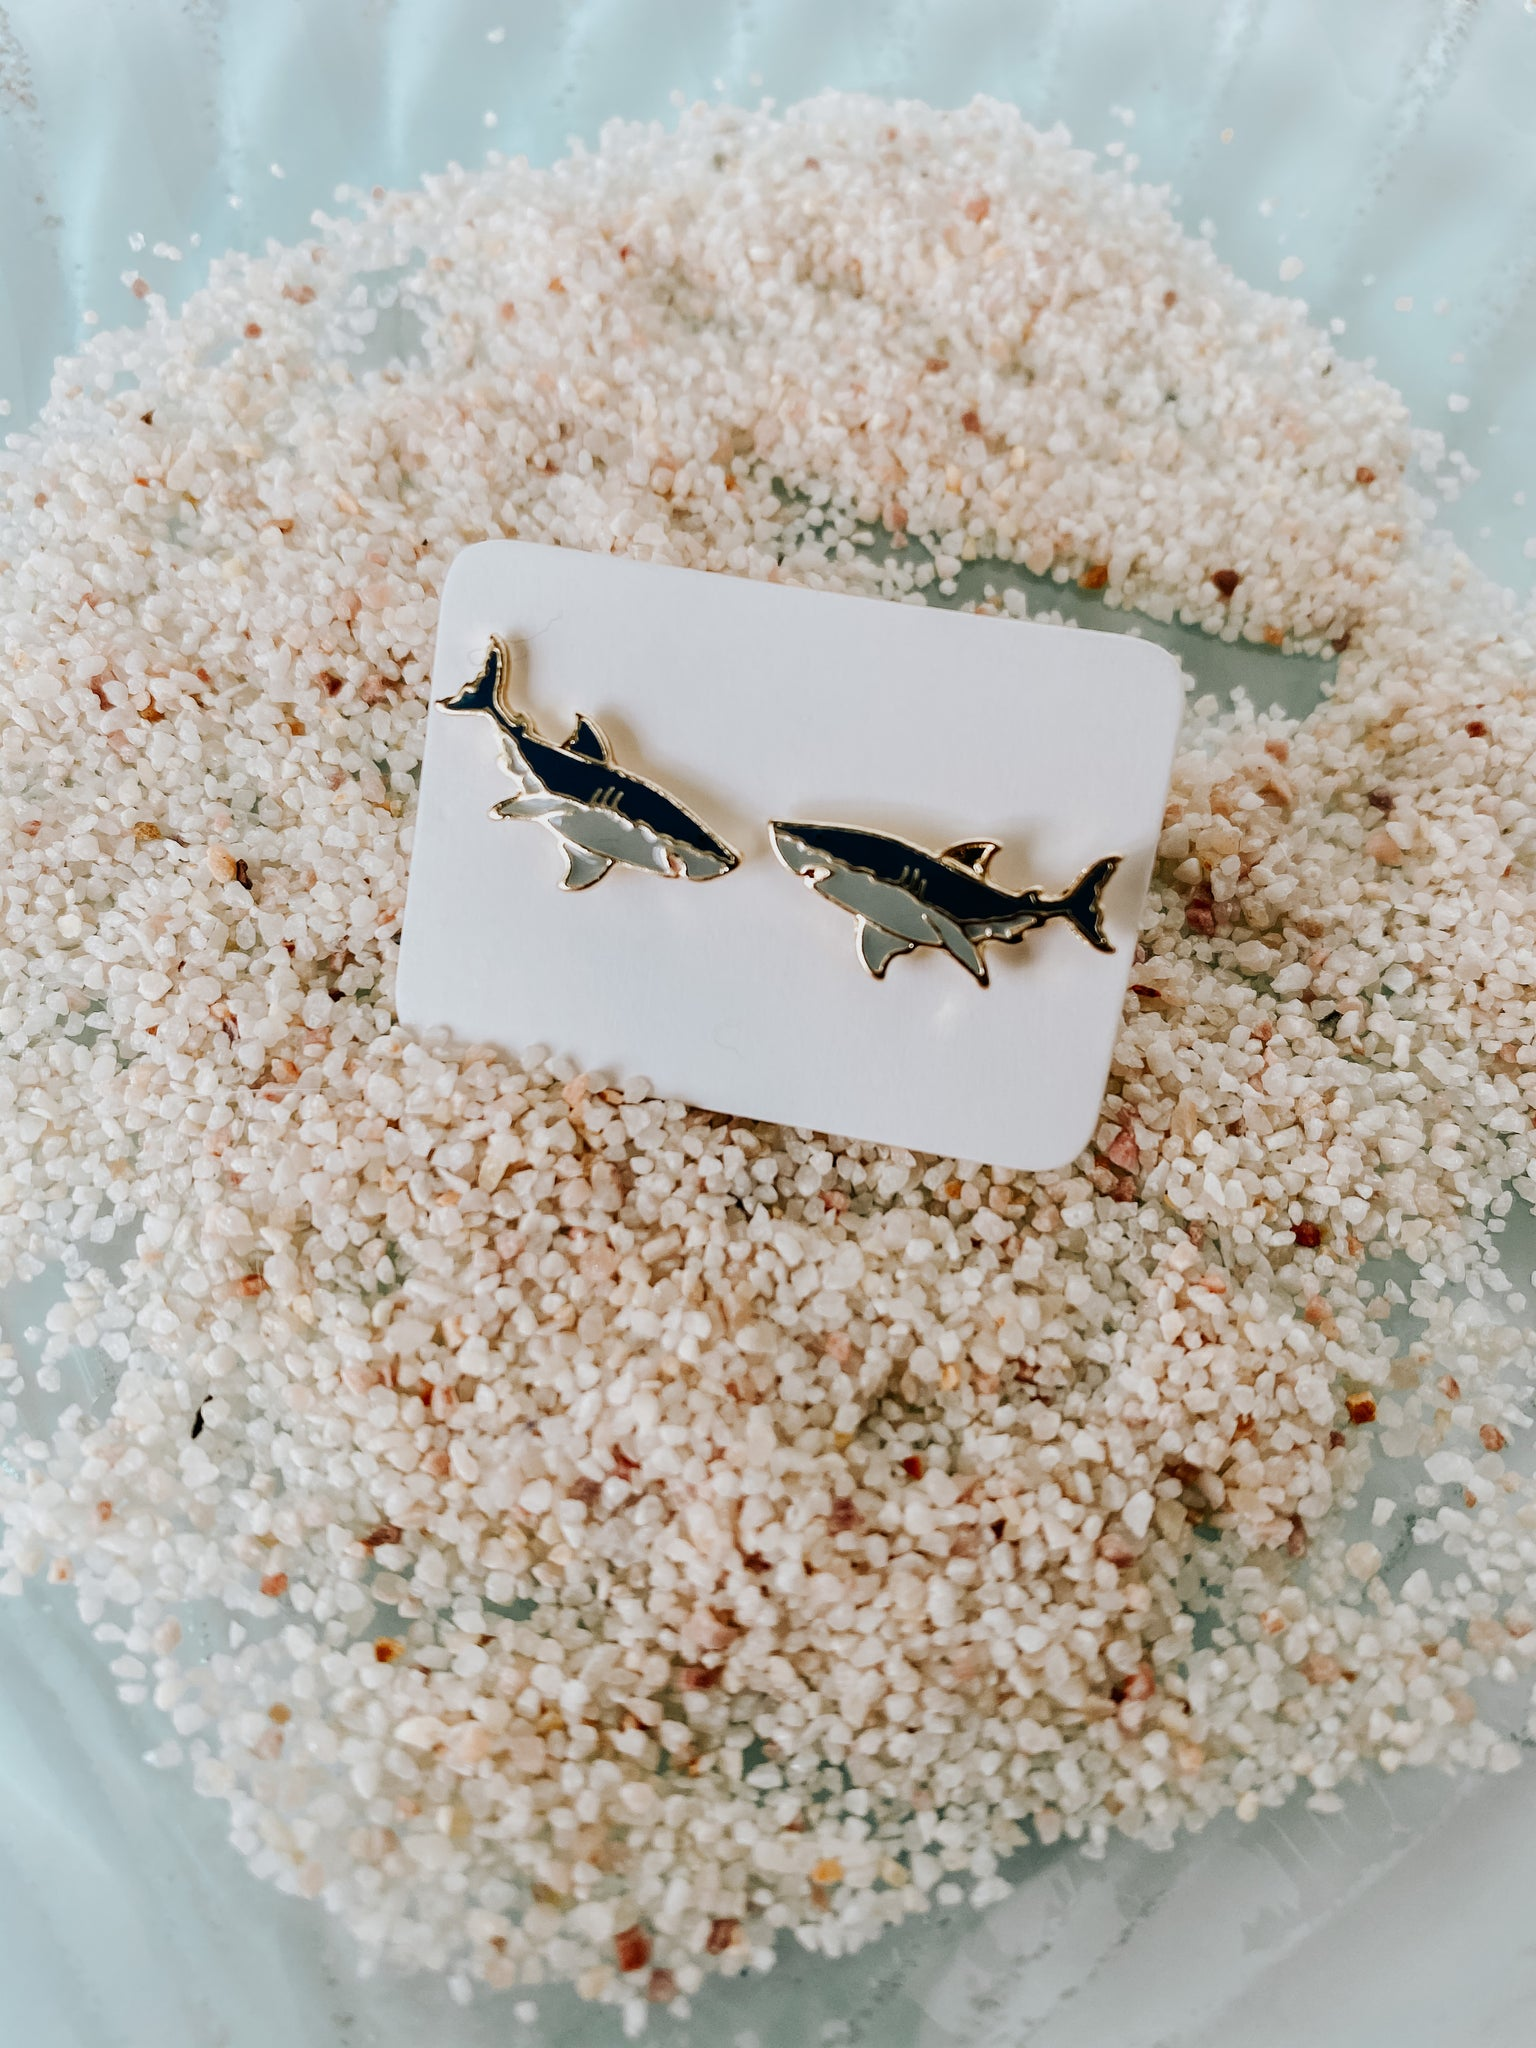 Great White Shark studs